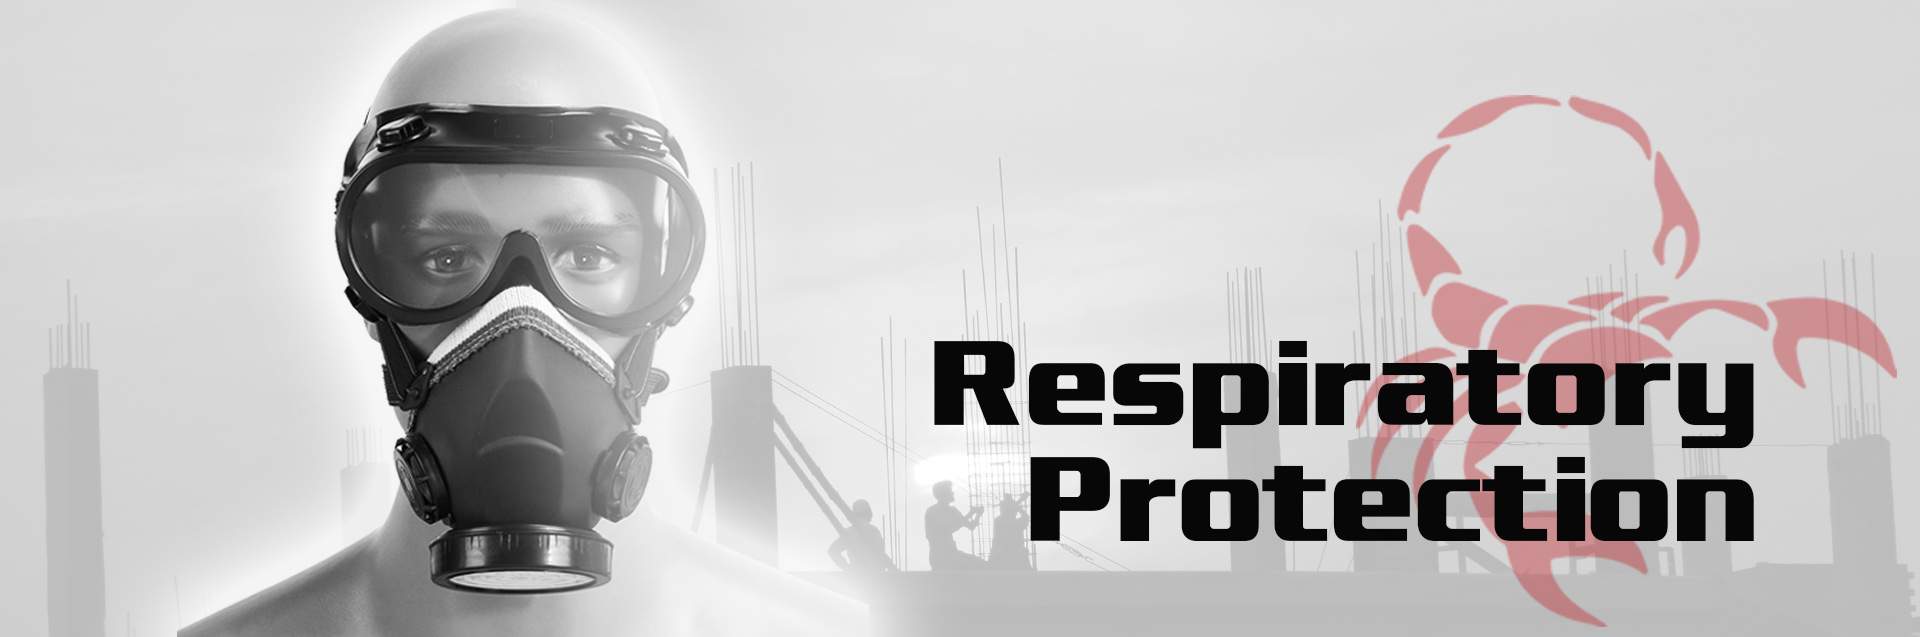 Respiratory Protection Banner